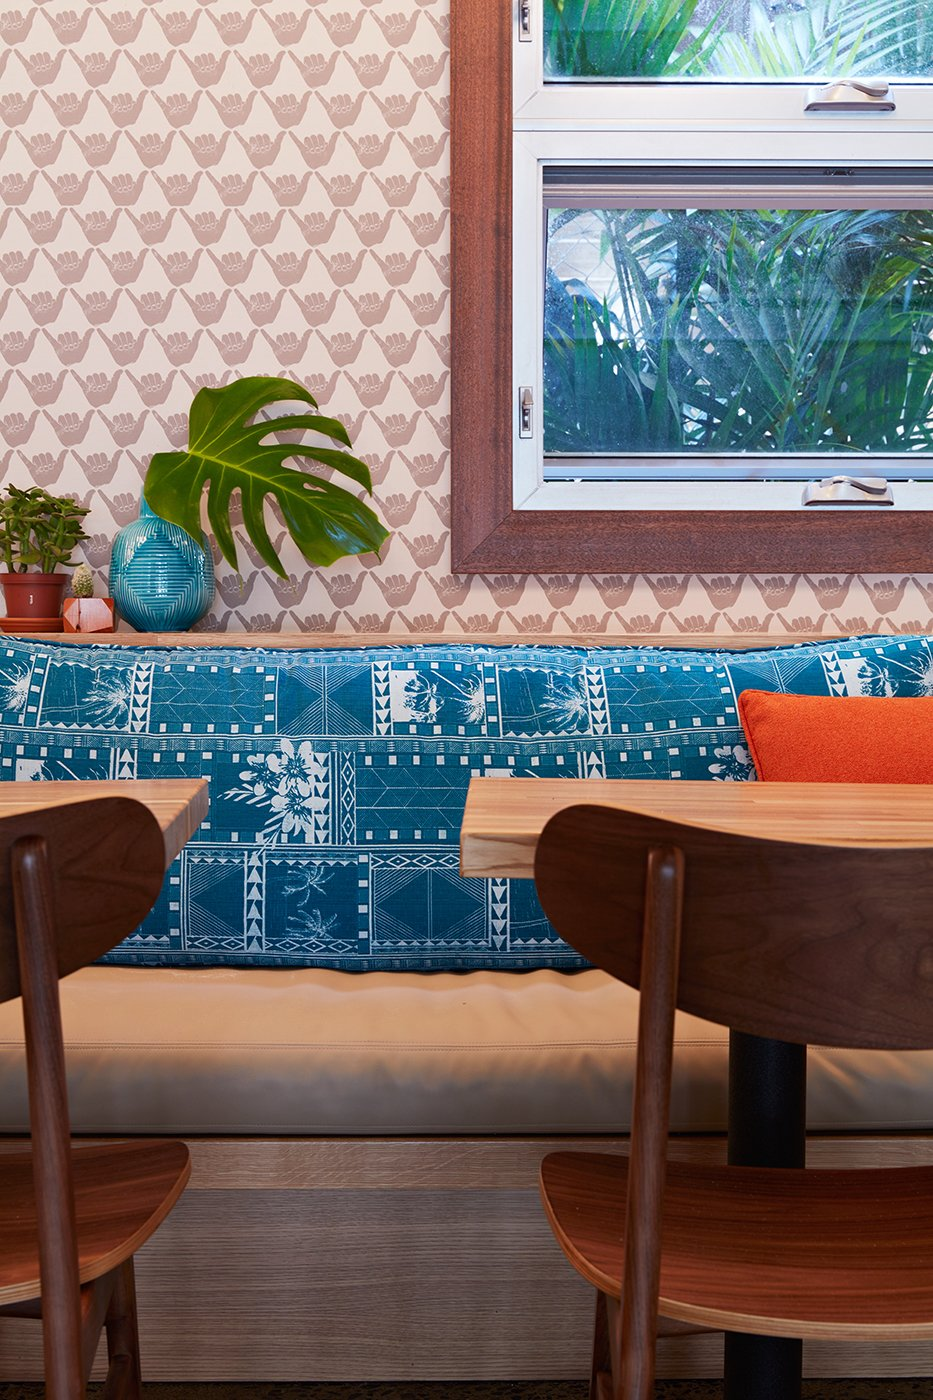 The aloha spirit runs deep in Mahina & Sun's, where the walls are covered with a shaka wallpaper by Andrew Mau. The cushions on the banquette seats were made with archived prints by Tori Richard, which were also used to create the headboards in the guest rooms and the men's uniforms. This Surf-Inspired Hotel Celebrates Waikiki's Creative Spirit and its Midcentury Roots - Photo 7 of 14